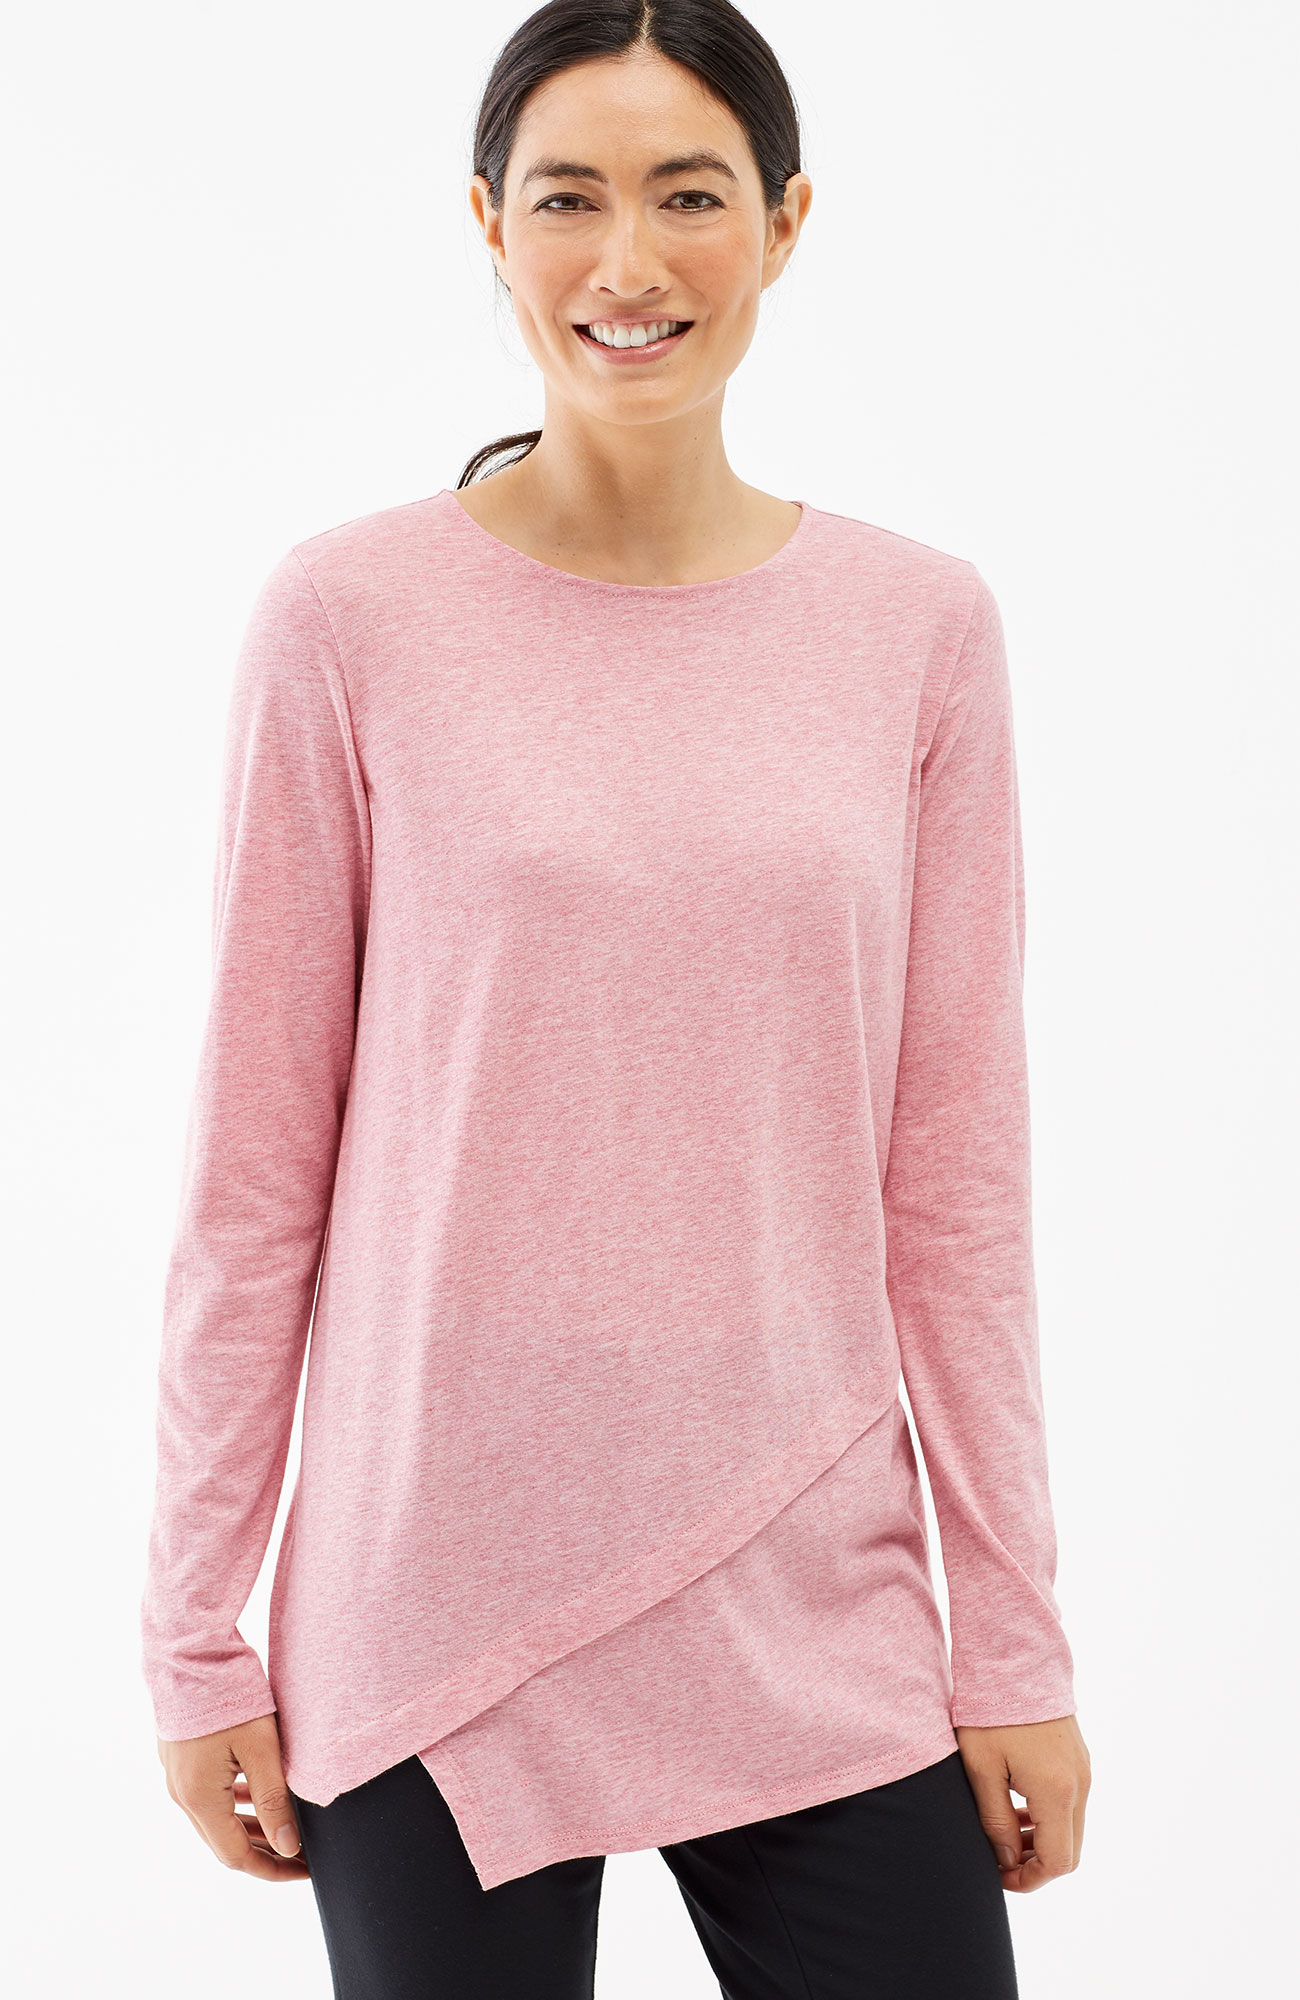 Pure Jill layered asymmetrical tee